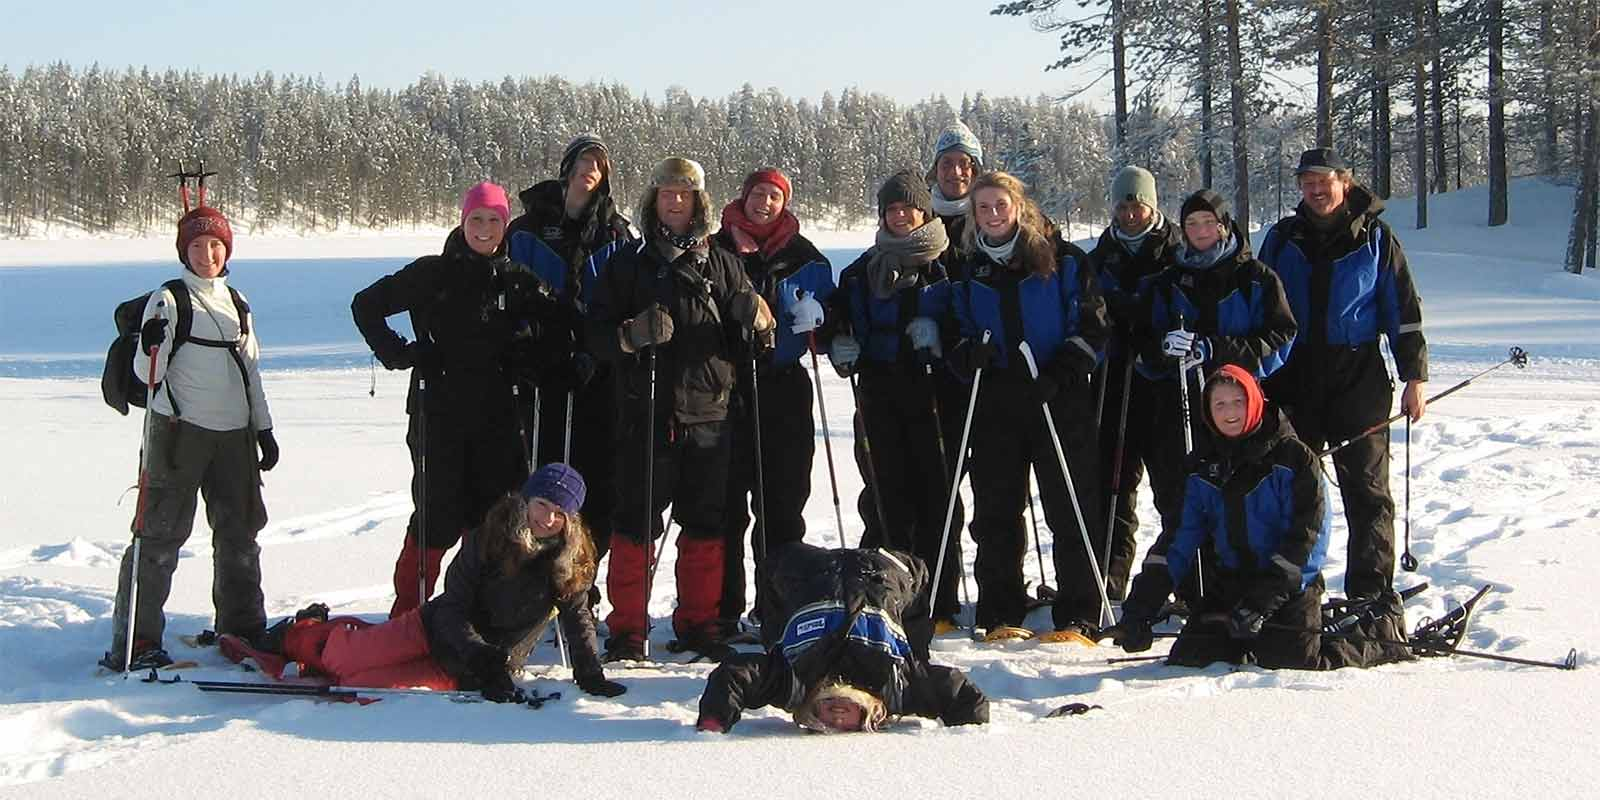 Cross country skiing group in Finland